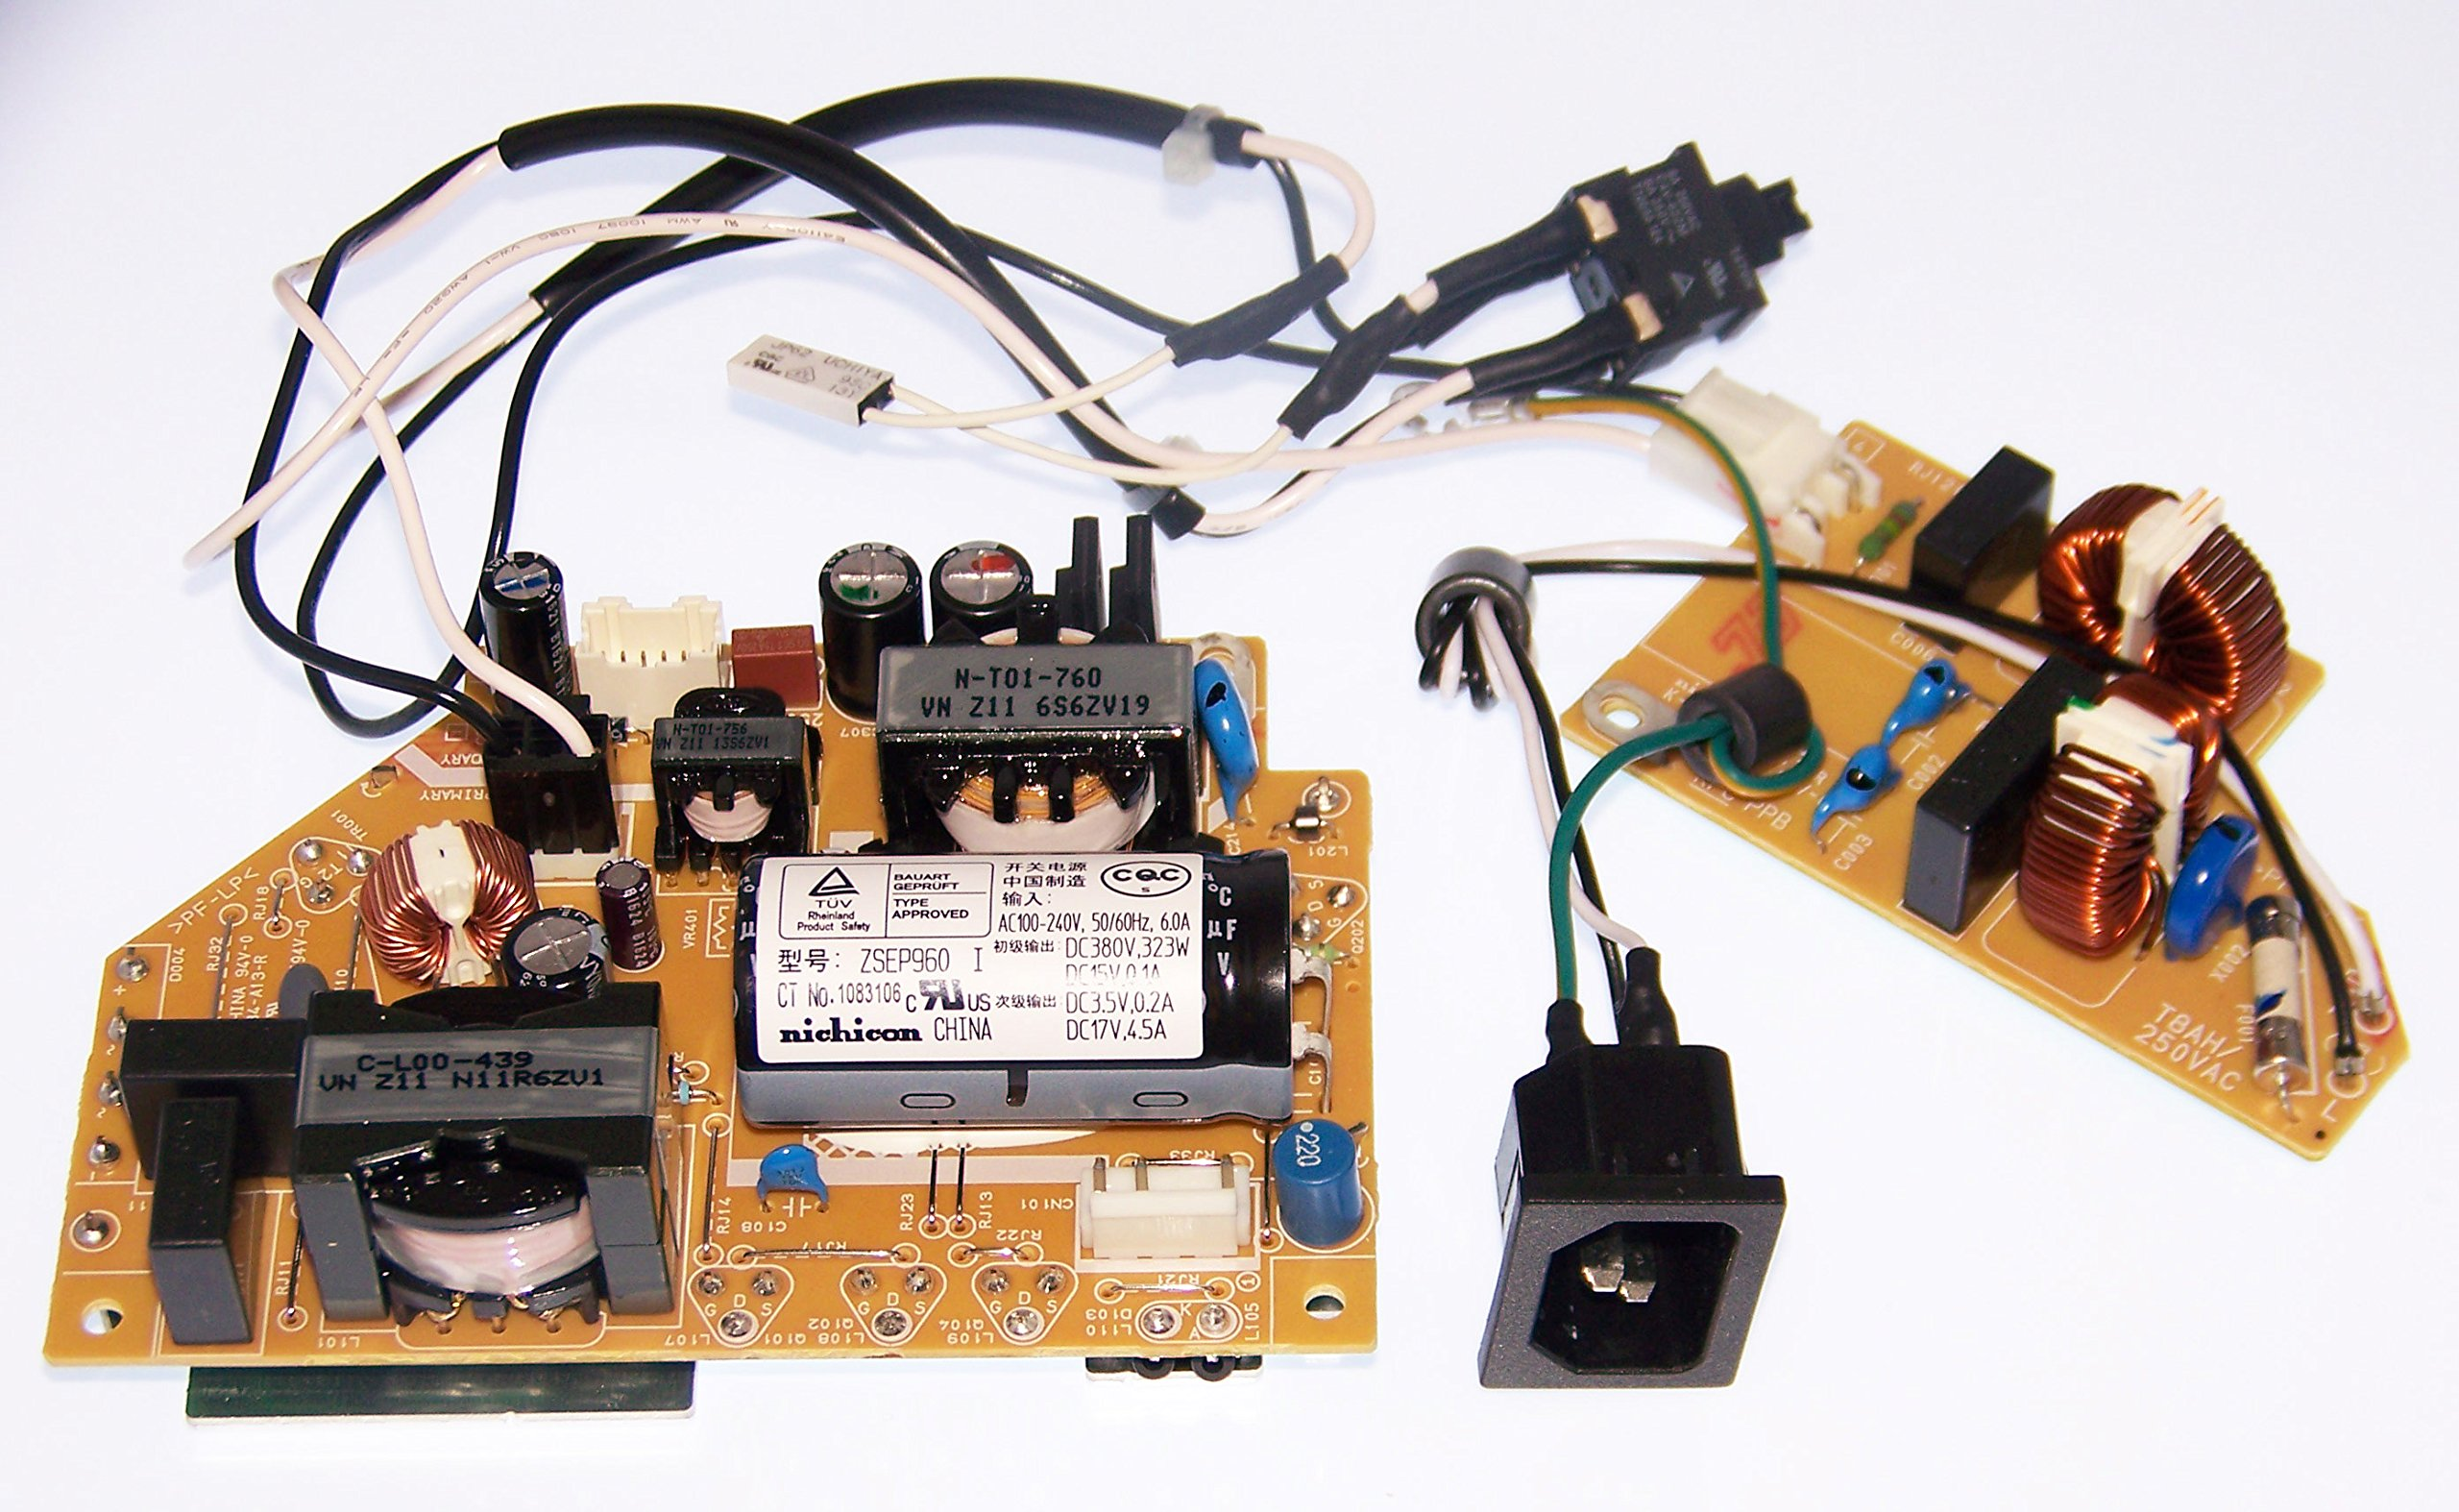 OEM Epson Projector PS Power Supply Filter Assembly For Epson BrightLink 475Wi, 480i, 485Wi, BrightLink Pro 1410Wi by Epson